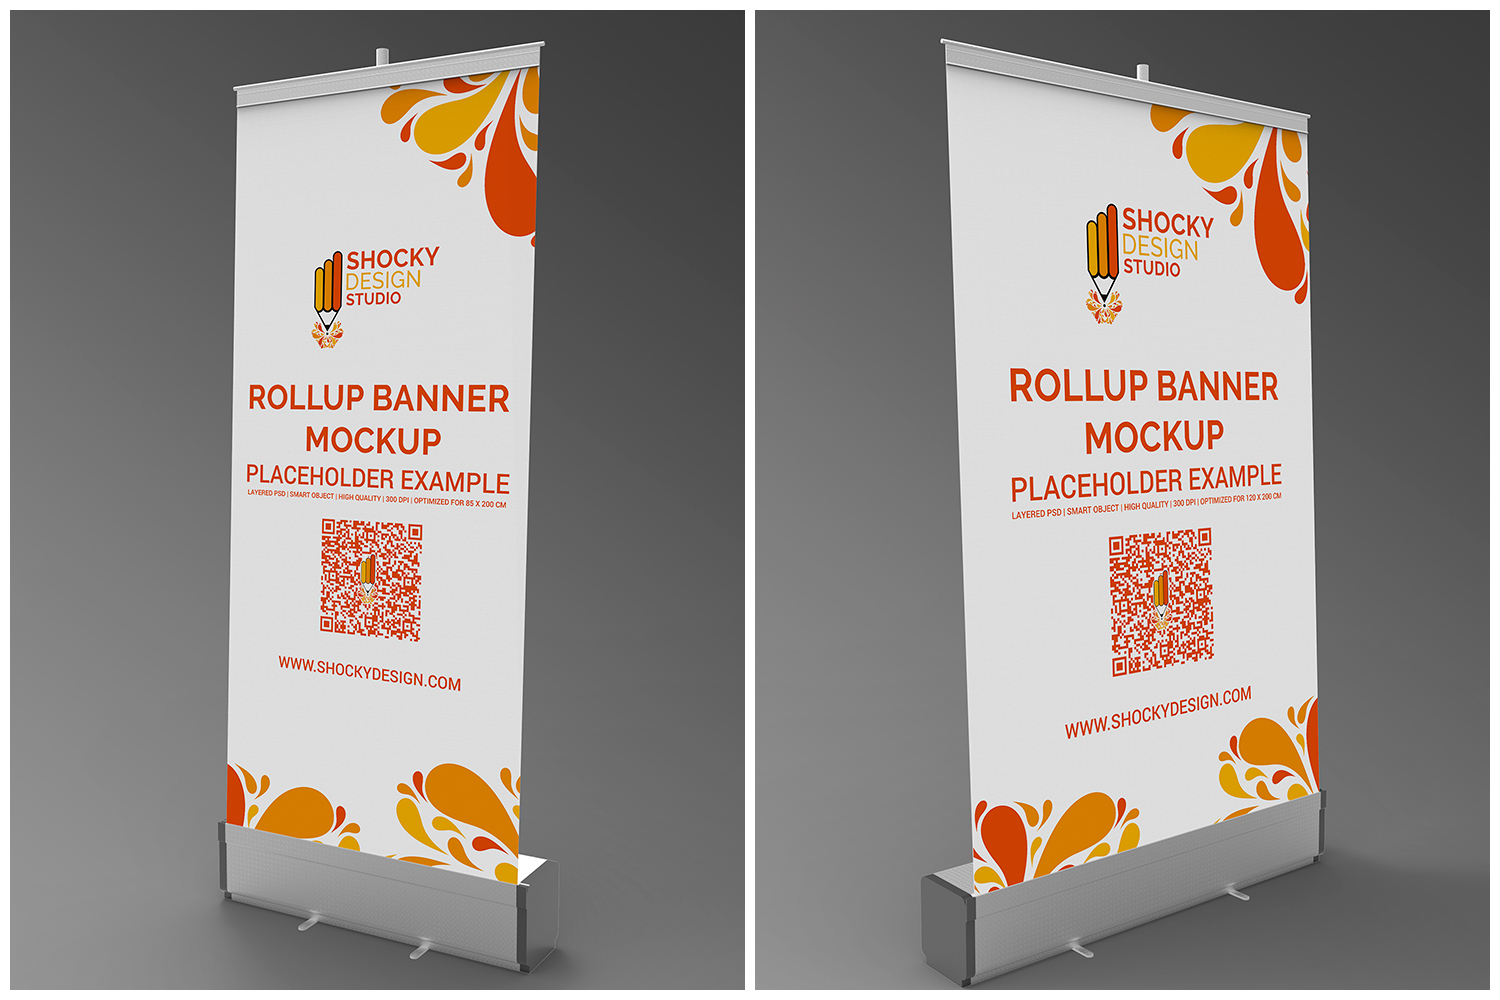 Rollup Banner Mockup example image 3